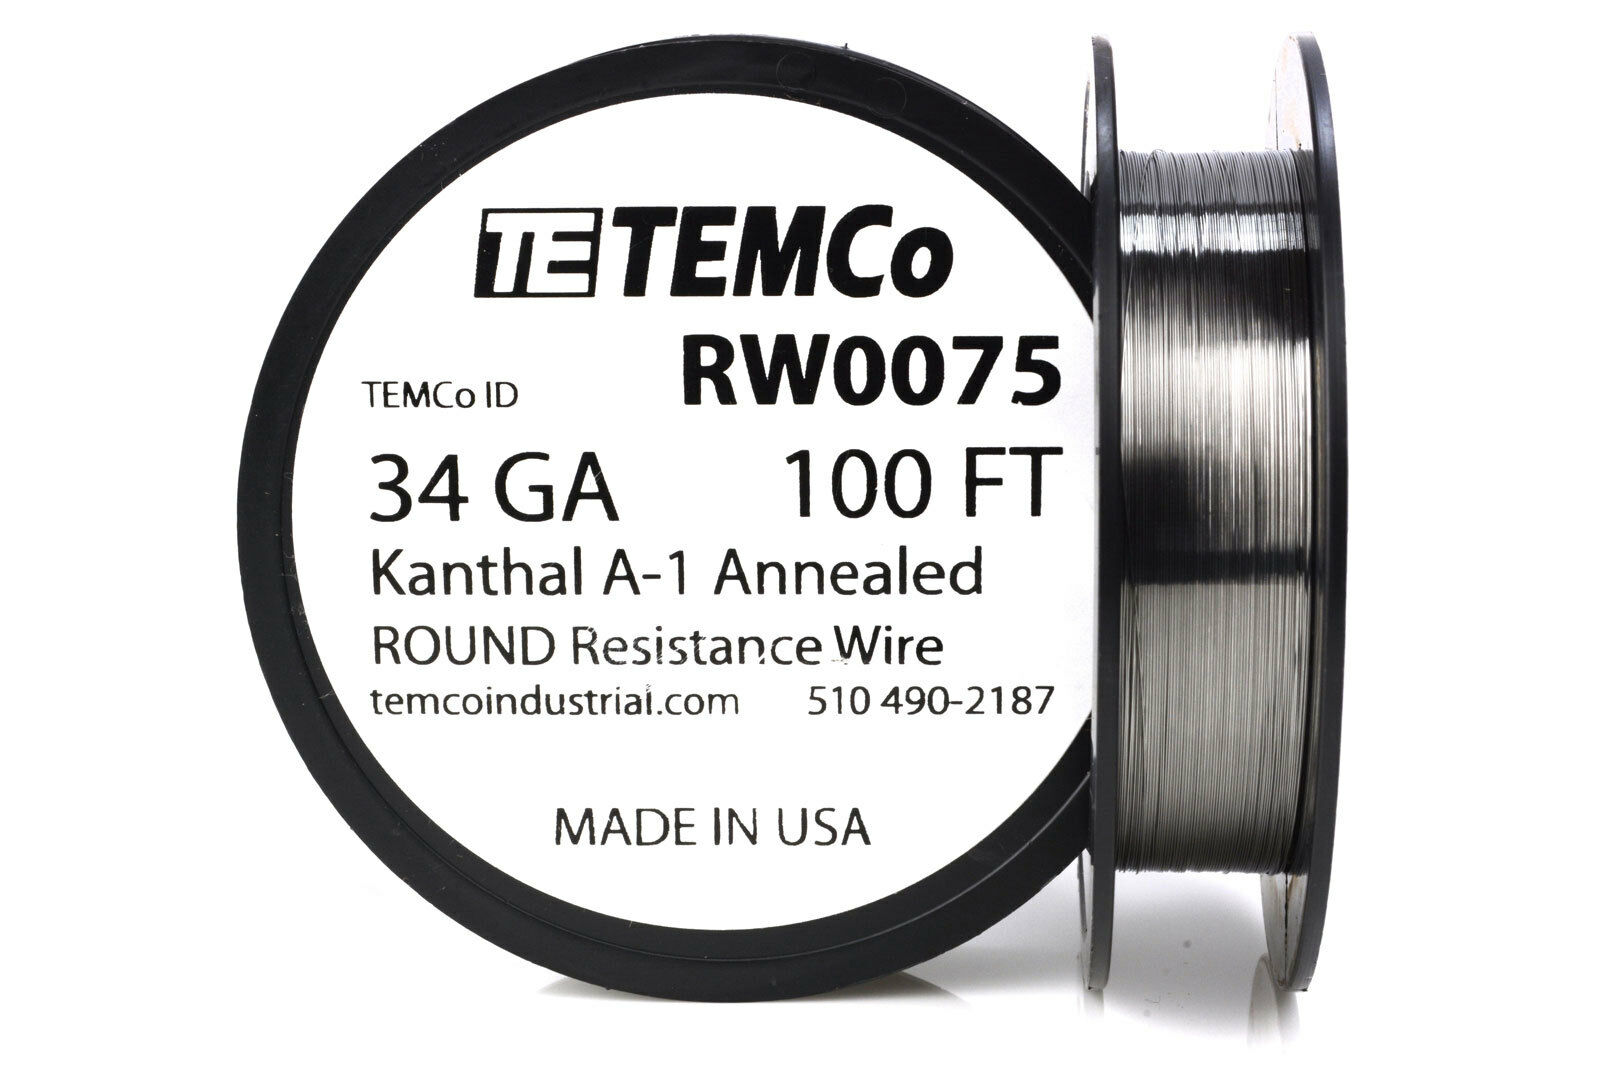 Dorable Temco Kanthal Wire Mold - Wiring Schematics and Diagrams ...